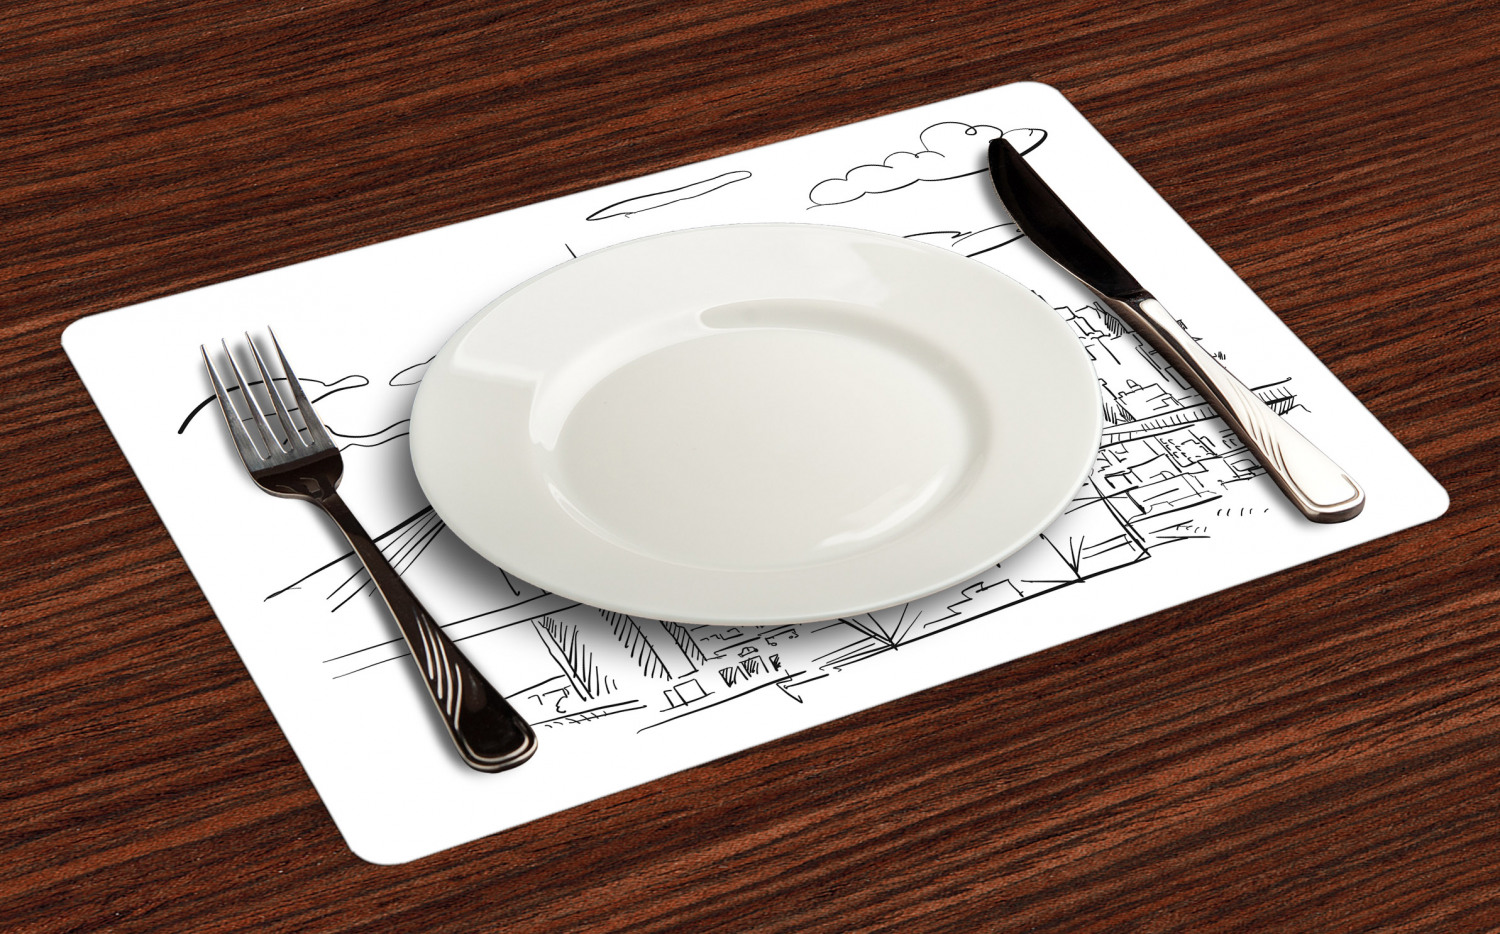 Ambesonne-Fabric-Place-Mats-Set-of-4-Placemats-for-Dining-Room-and-Kitchen-Table thumbnail 13